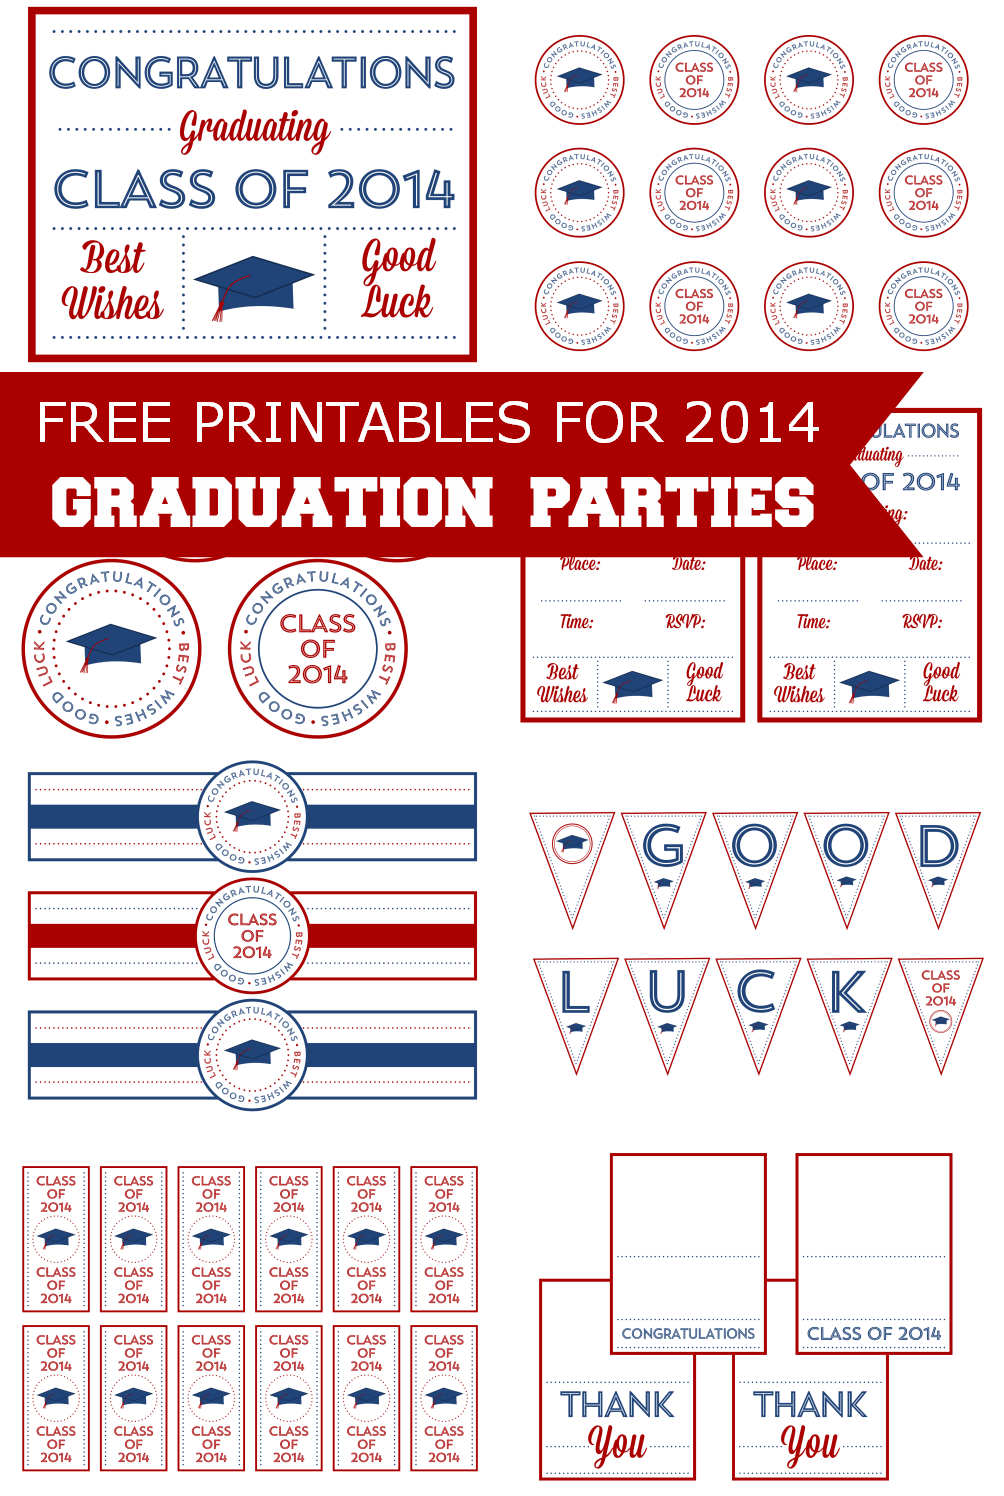 Free 2014 Graduation Party Printables from Printabelle | Catch My Party